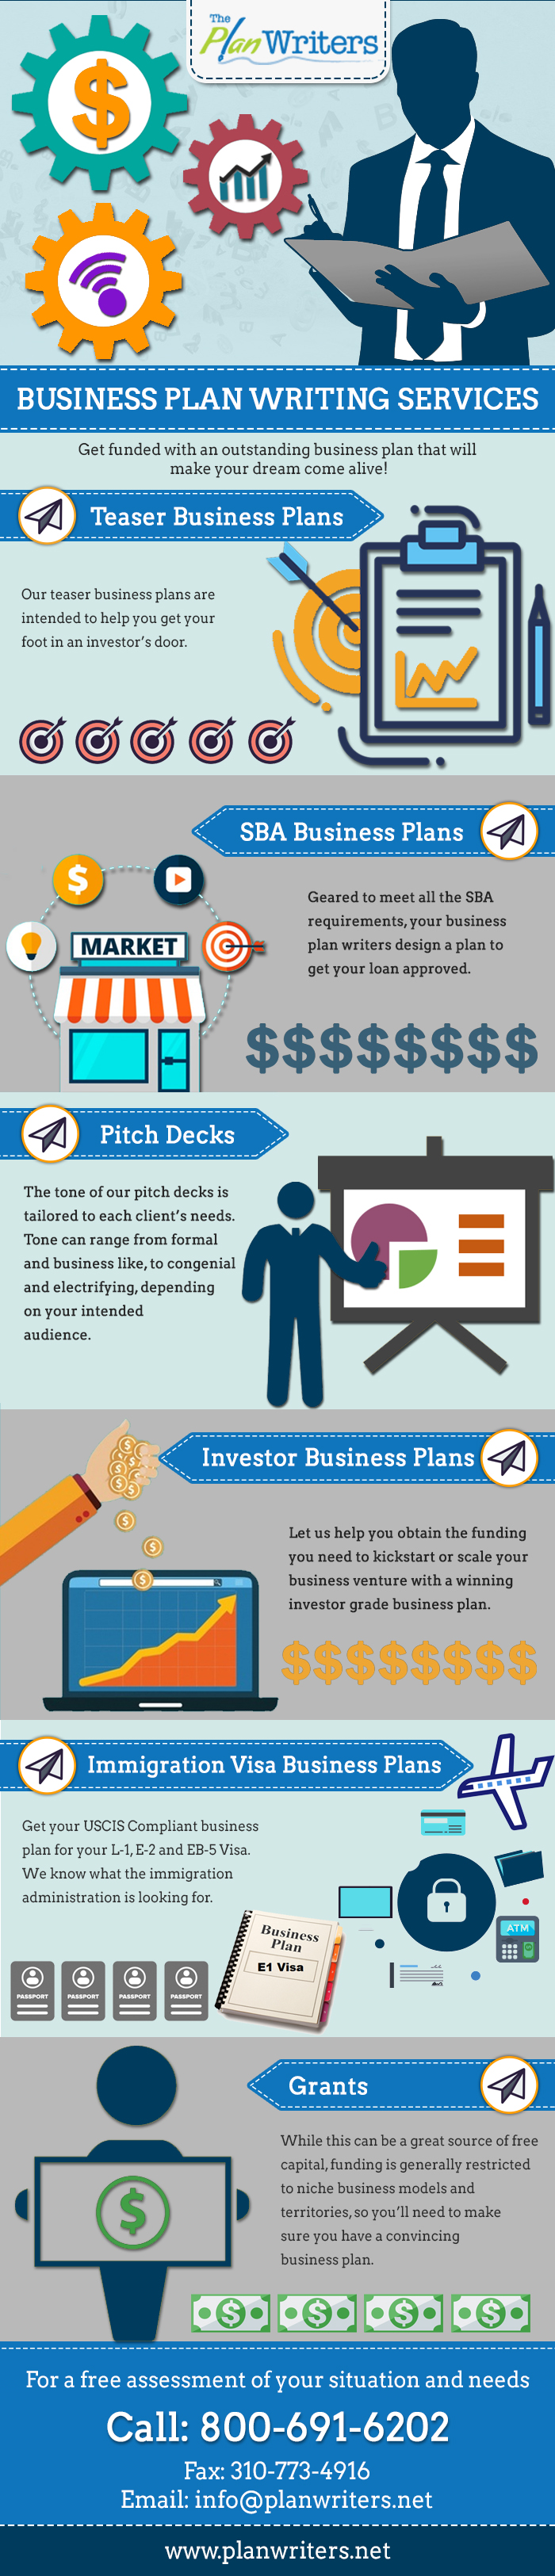 Business plan writing services cost uk